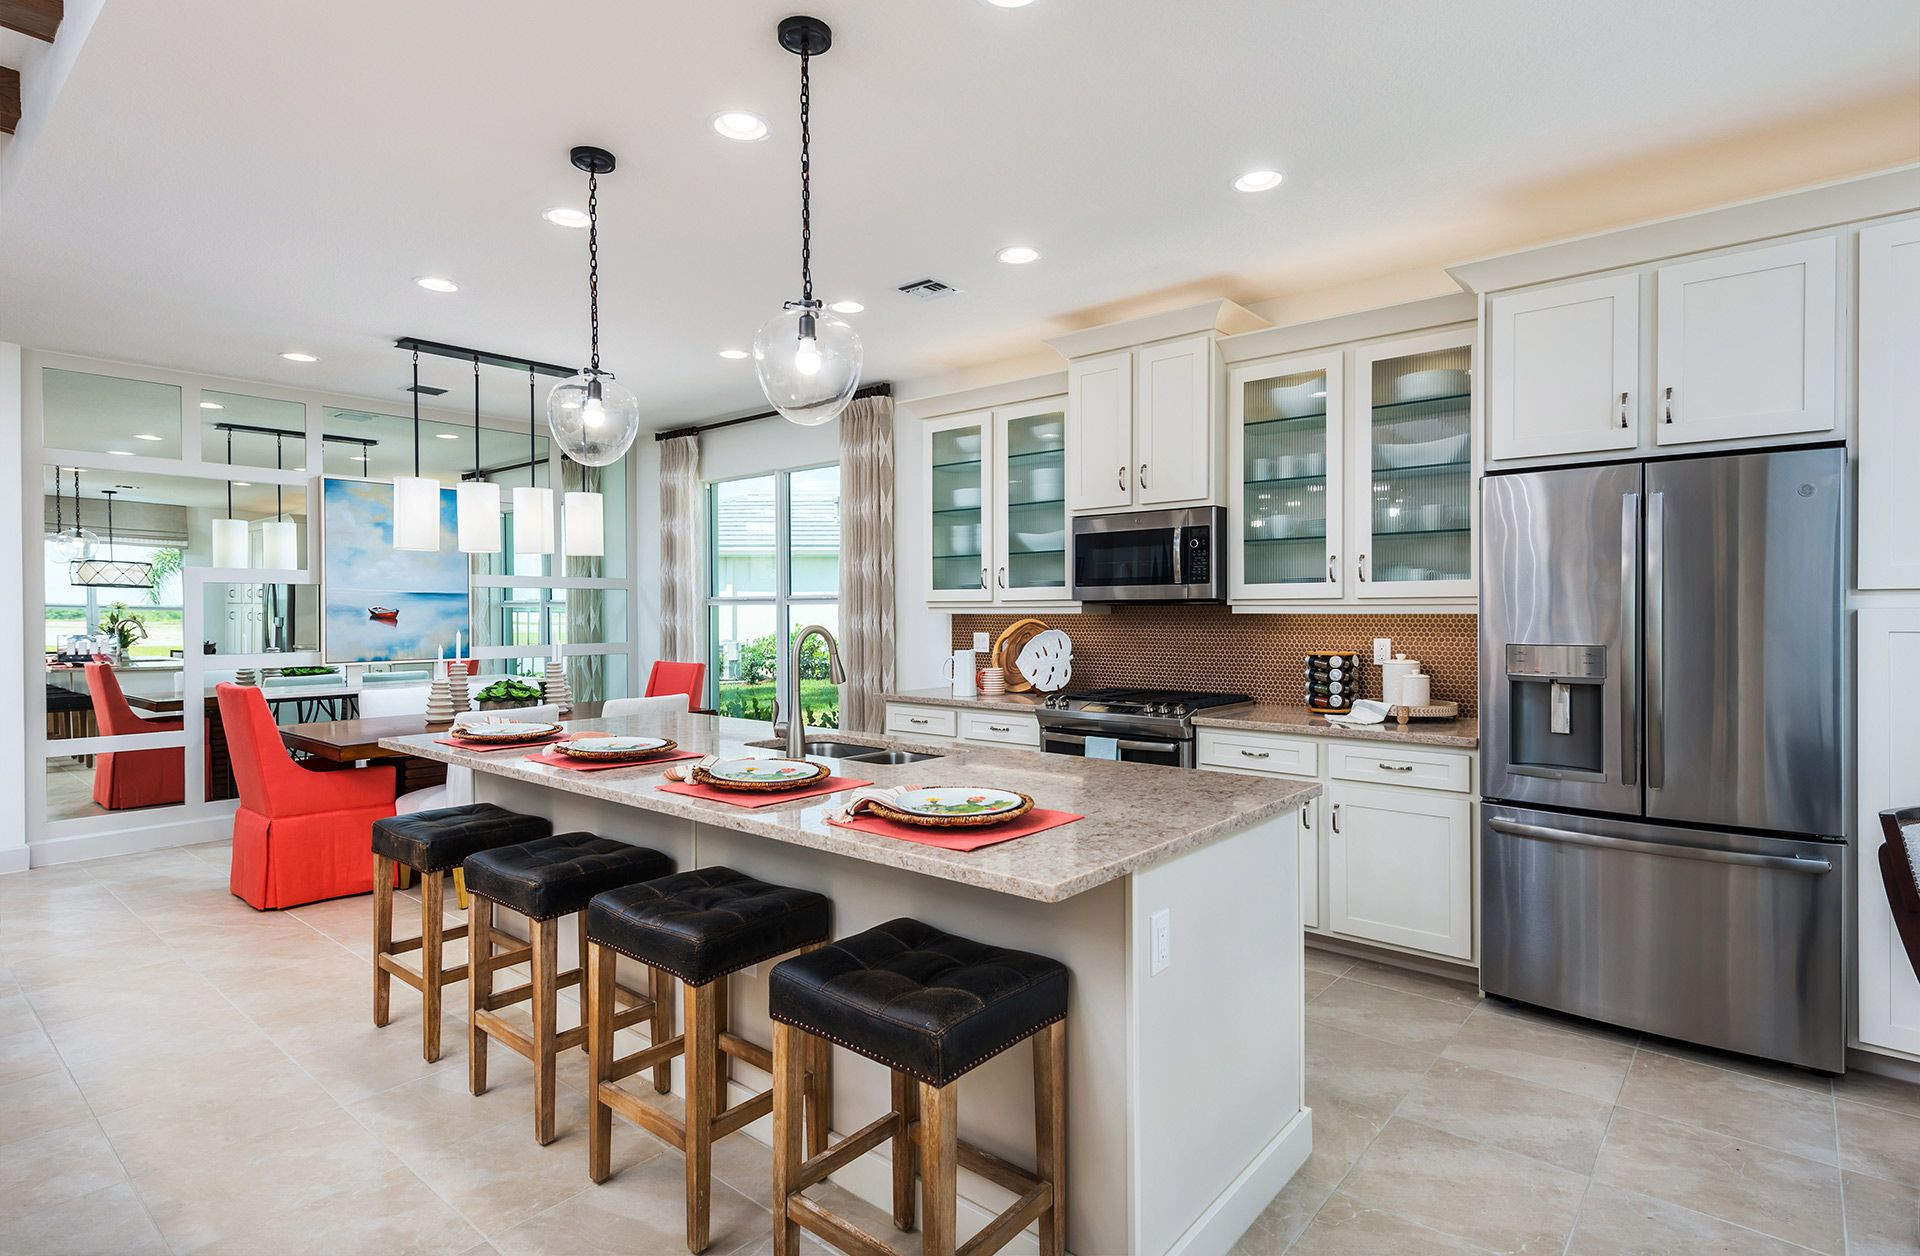 Kitchen featured in the Palazzo By GL Homes in Martin-St. Lucie-Okeechobee Counties, FL